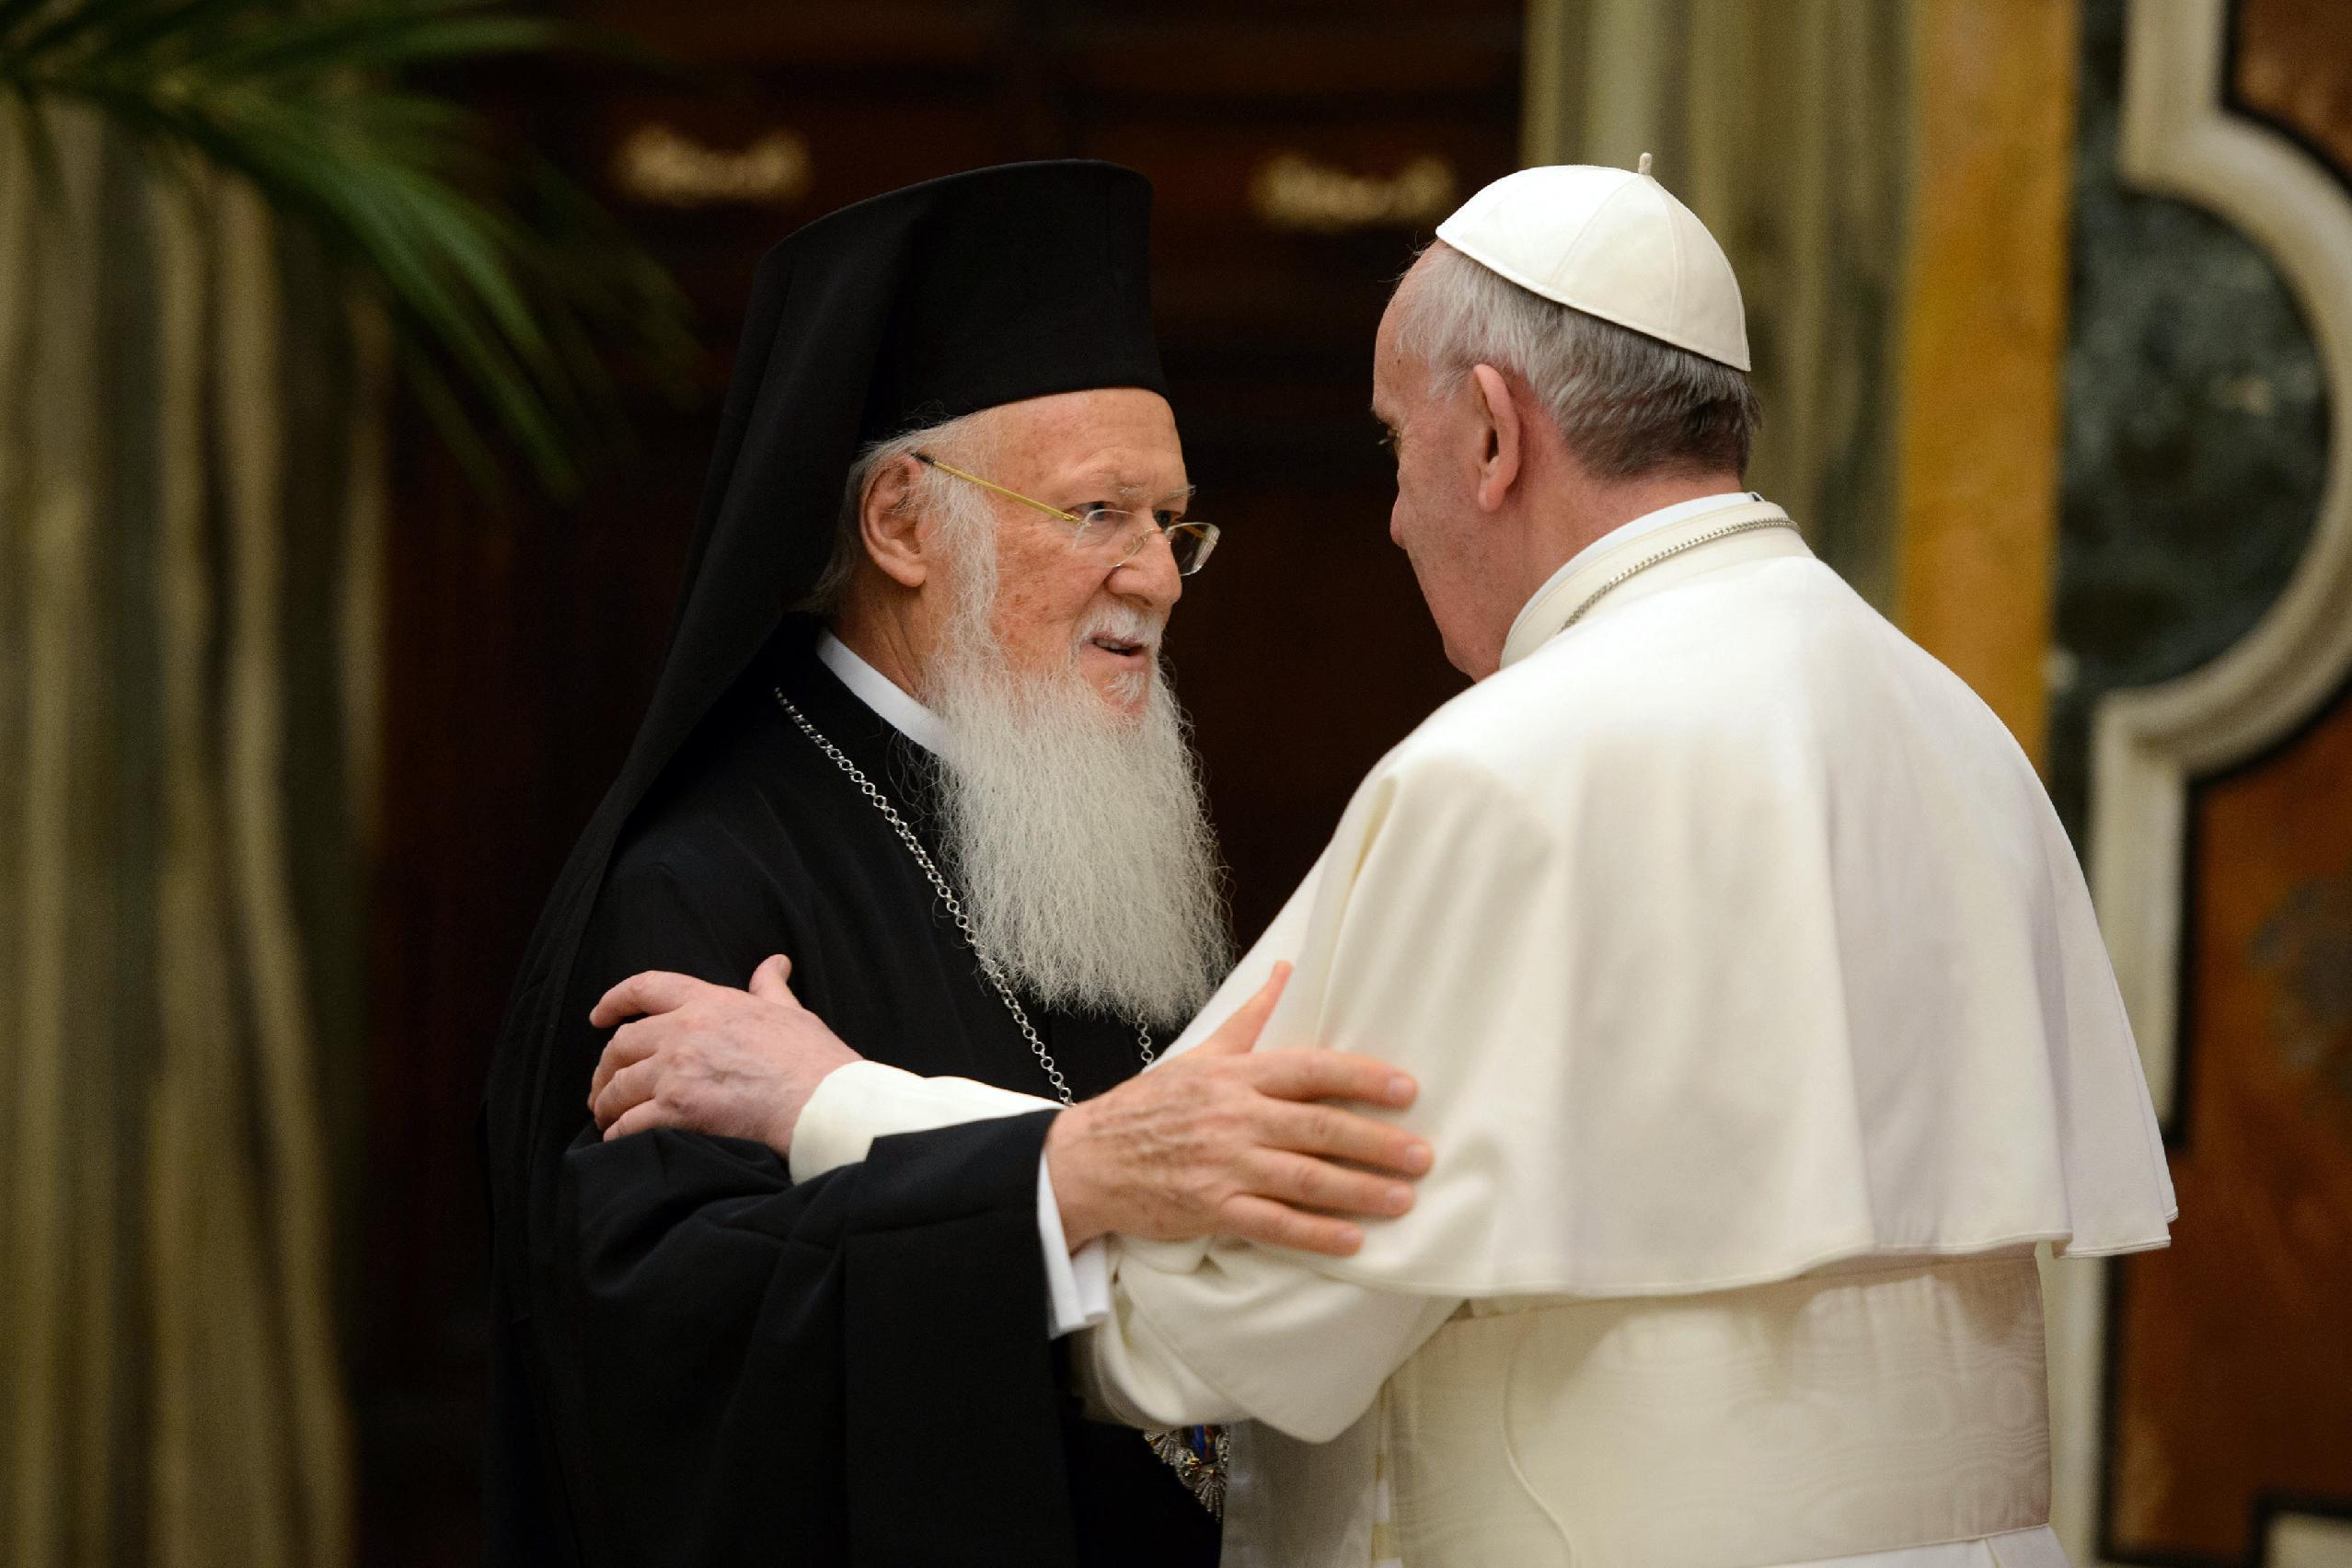 FILE- In this March 20, 2013, file photo provided by the Vatican paper L' Osservatore Romano, Pope Francis, right, meets Bartholomew I, the first ecumenical patriarch to attend the installation of a Pope since the Catholic and Orthodox church split nearly 1,000 years ago, at the Vatican. Bartholomew I, spiritual leader of 250 million Orthodox Christians, said a meeting with Pope Francis in Jerusalem in May 2014, will help move the two churches closer to ending their nearly one-thousand-year divide. (AP Photo/Osservatore Romano, File)